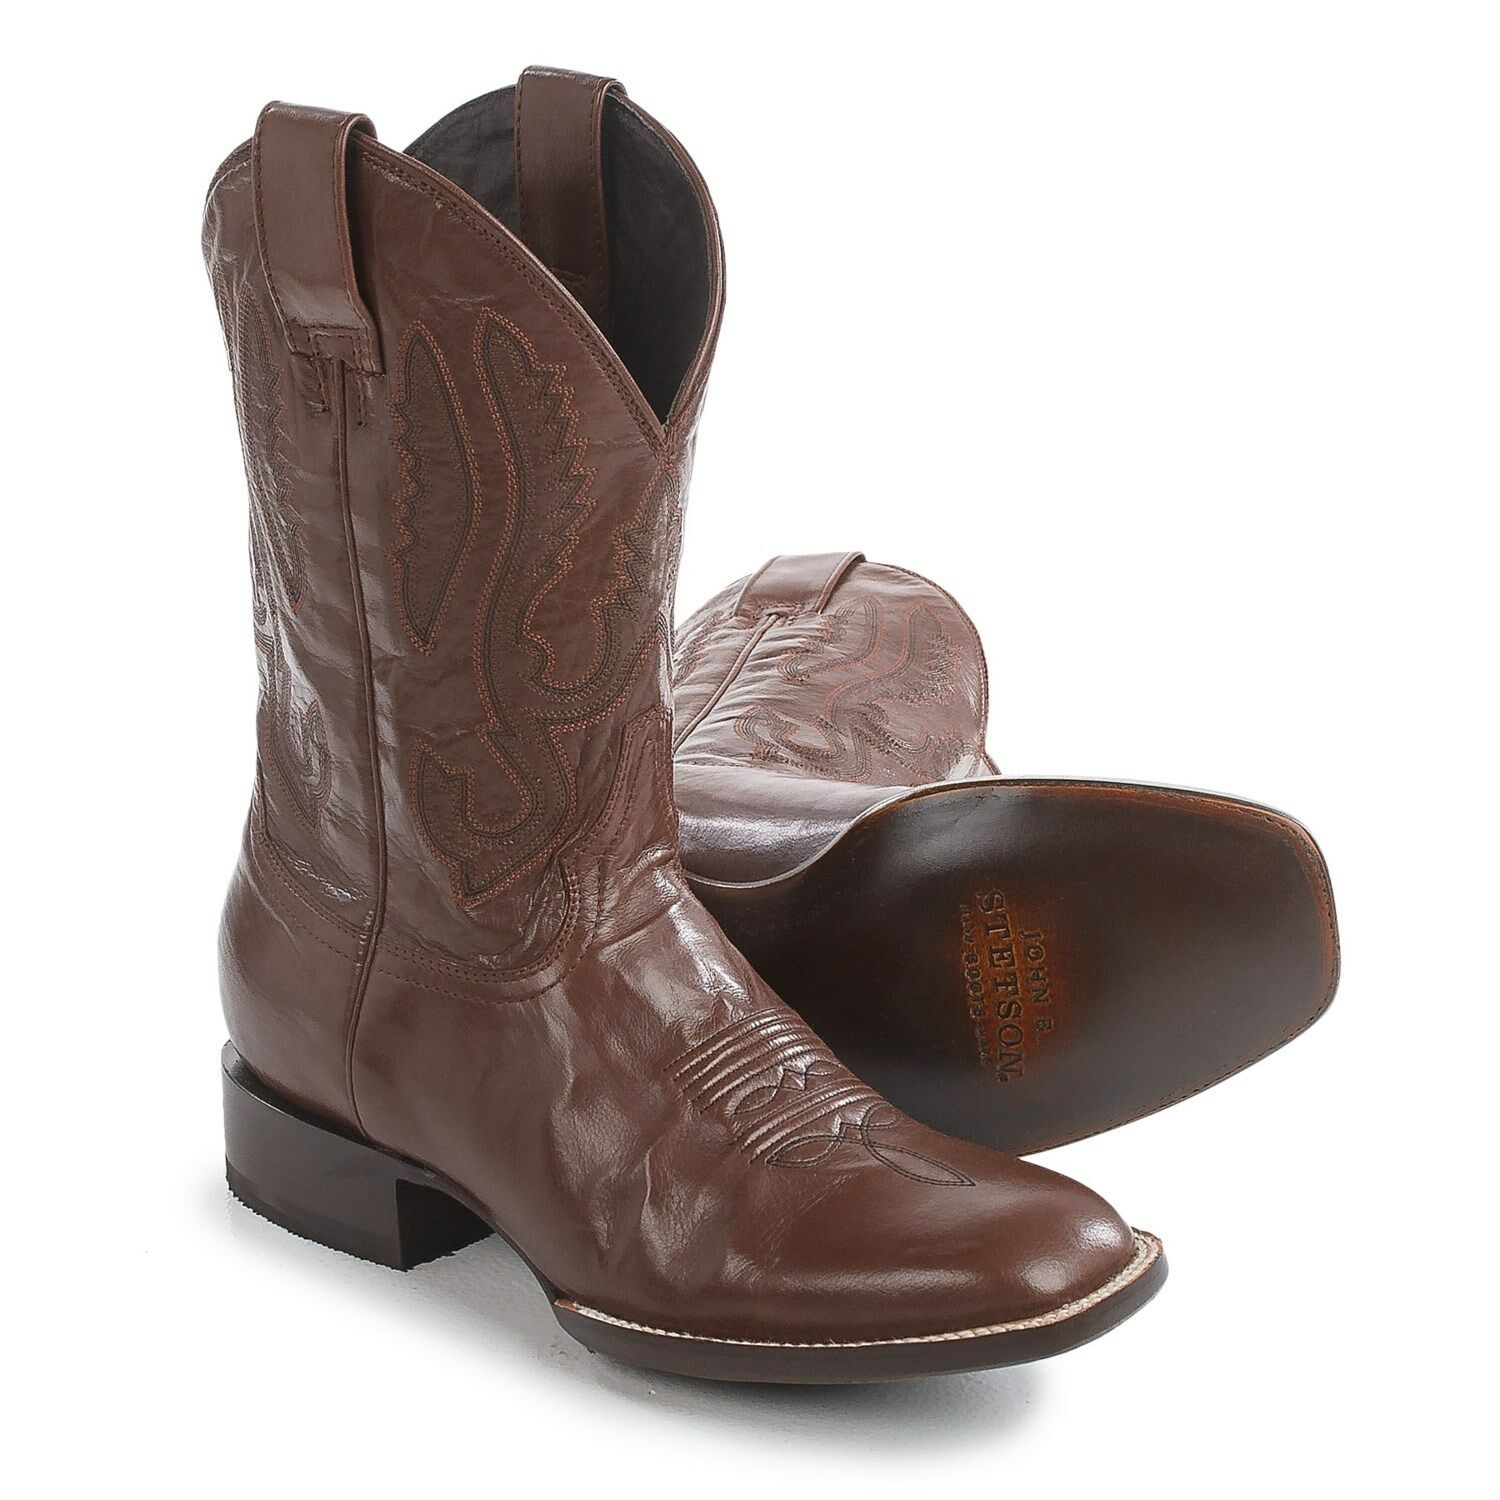 Steton Men's Cavalry US 11 D Brown Leather Square Toe Western Cowboy Boots